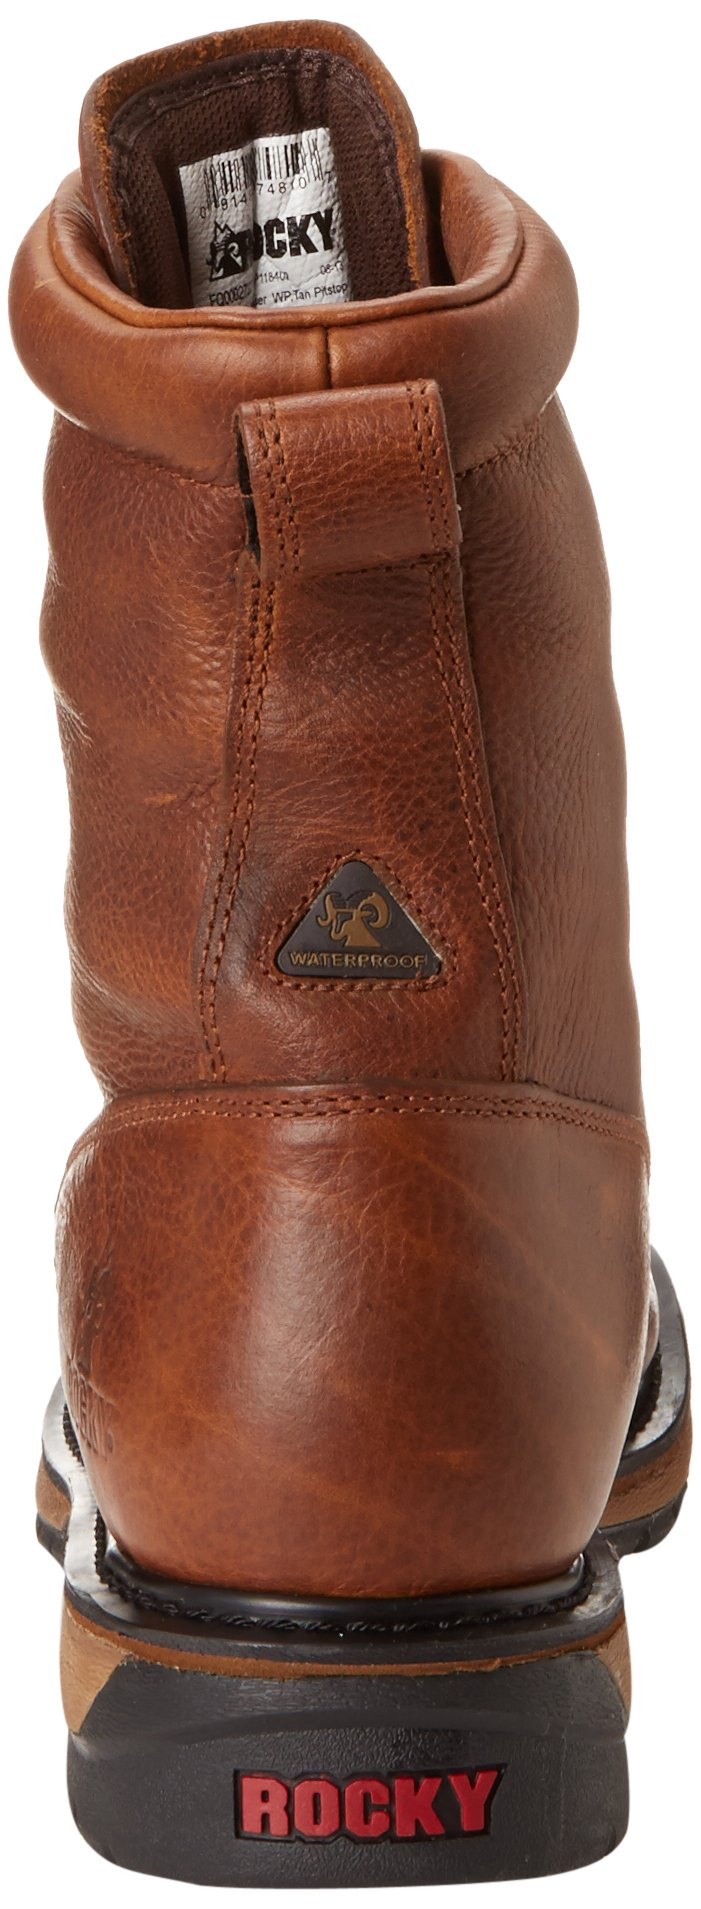 Men's Rocky 8'' EH Ride Lacer Work Boots BROWN 7.5 W by Rocky (Image #2)